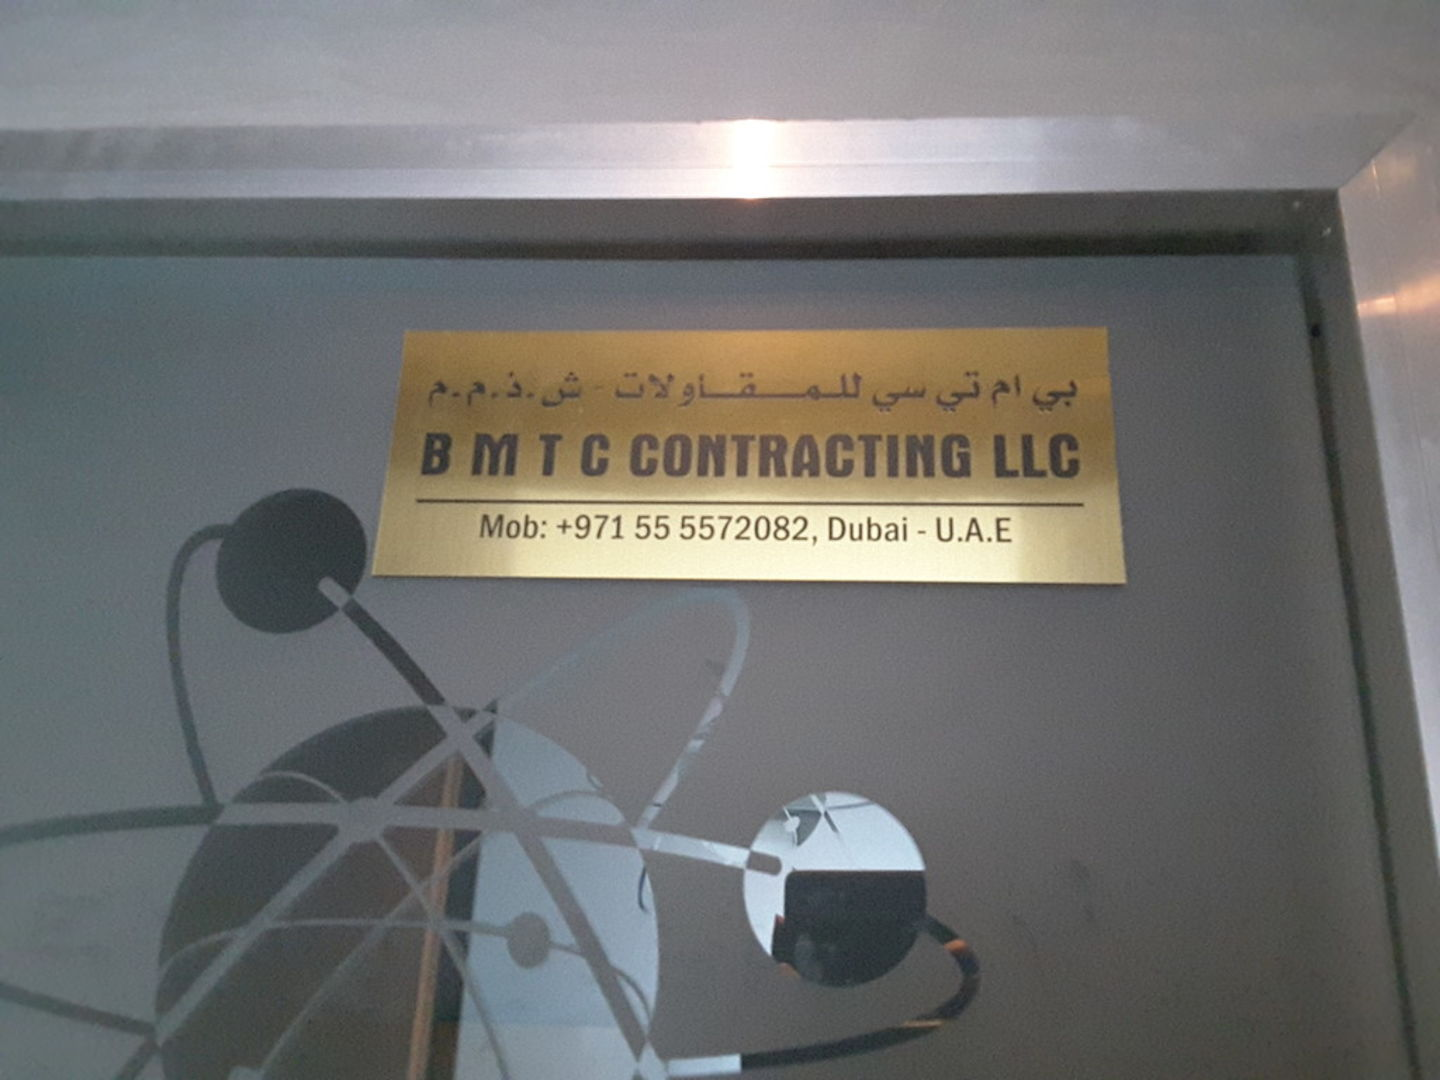 Walif-business-b-m-t-c-contracting